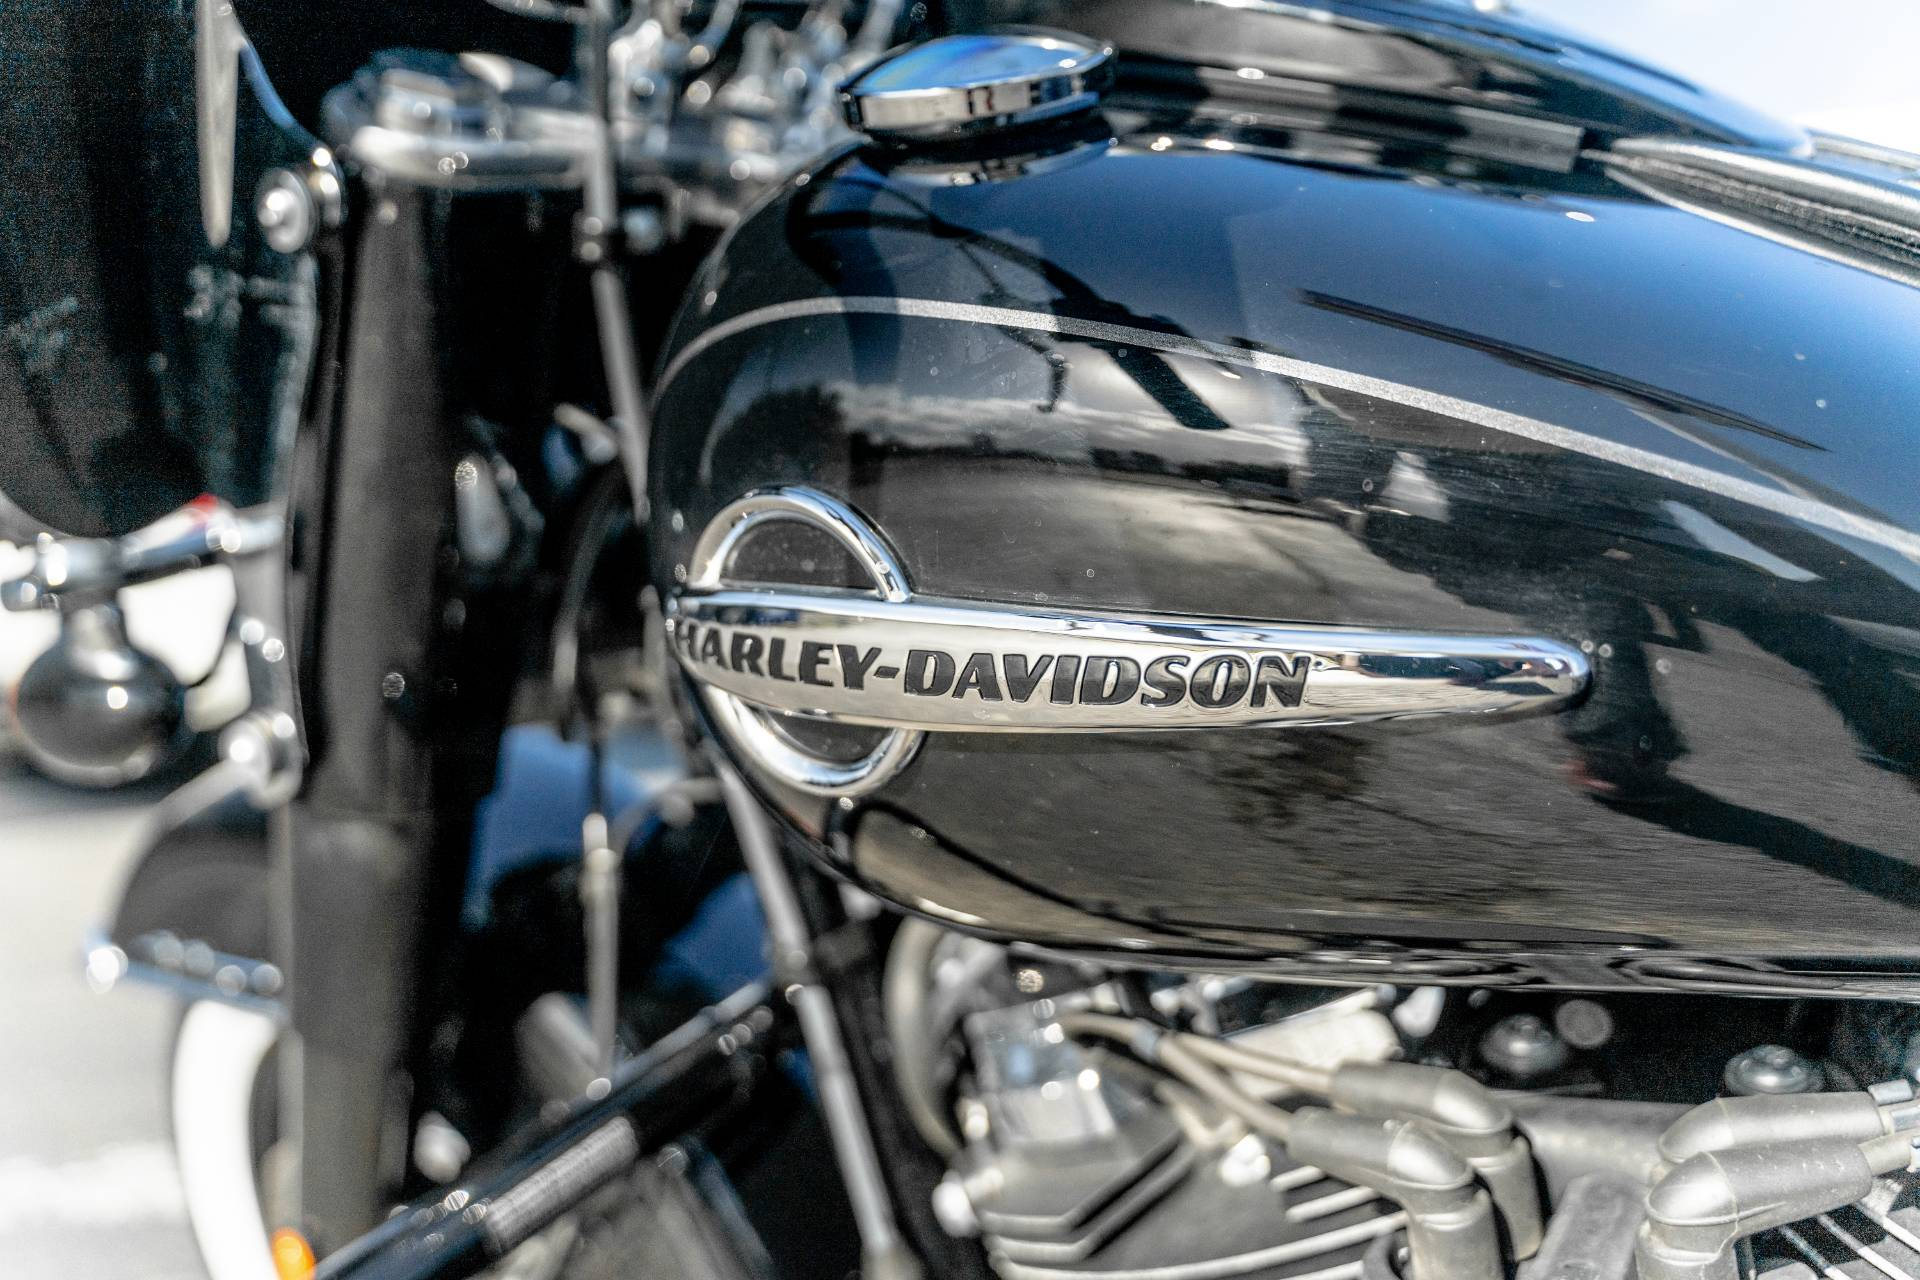 2019 Harley-Davidson Heritage Classic 114 in Houston, Texas - Photo 31